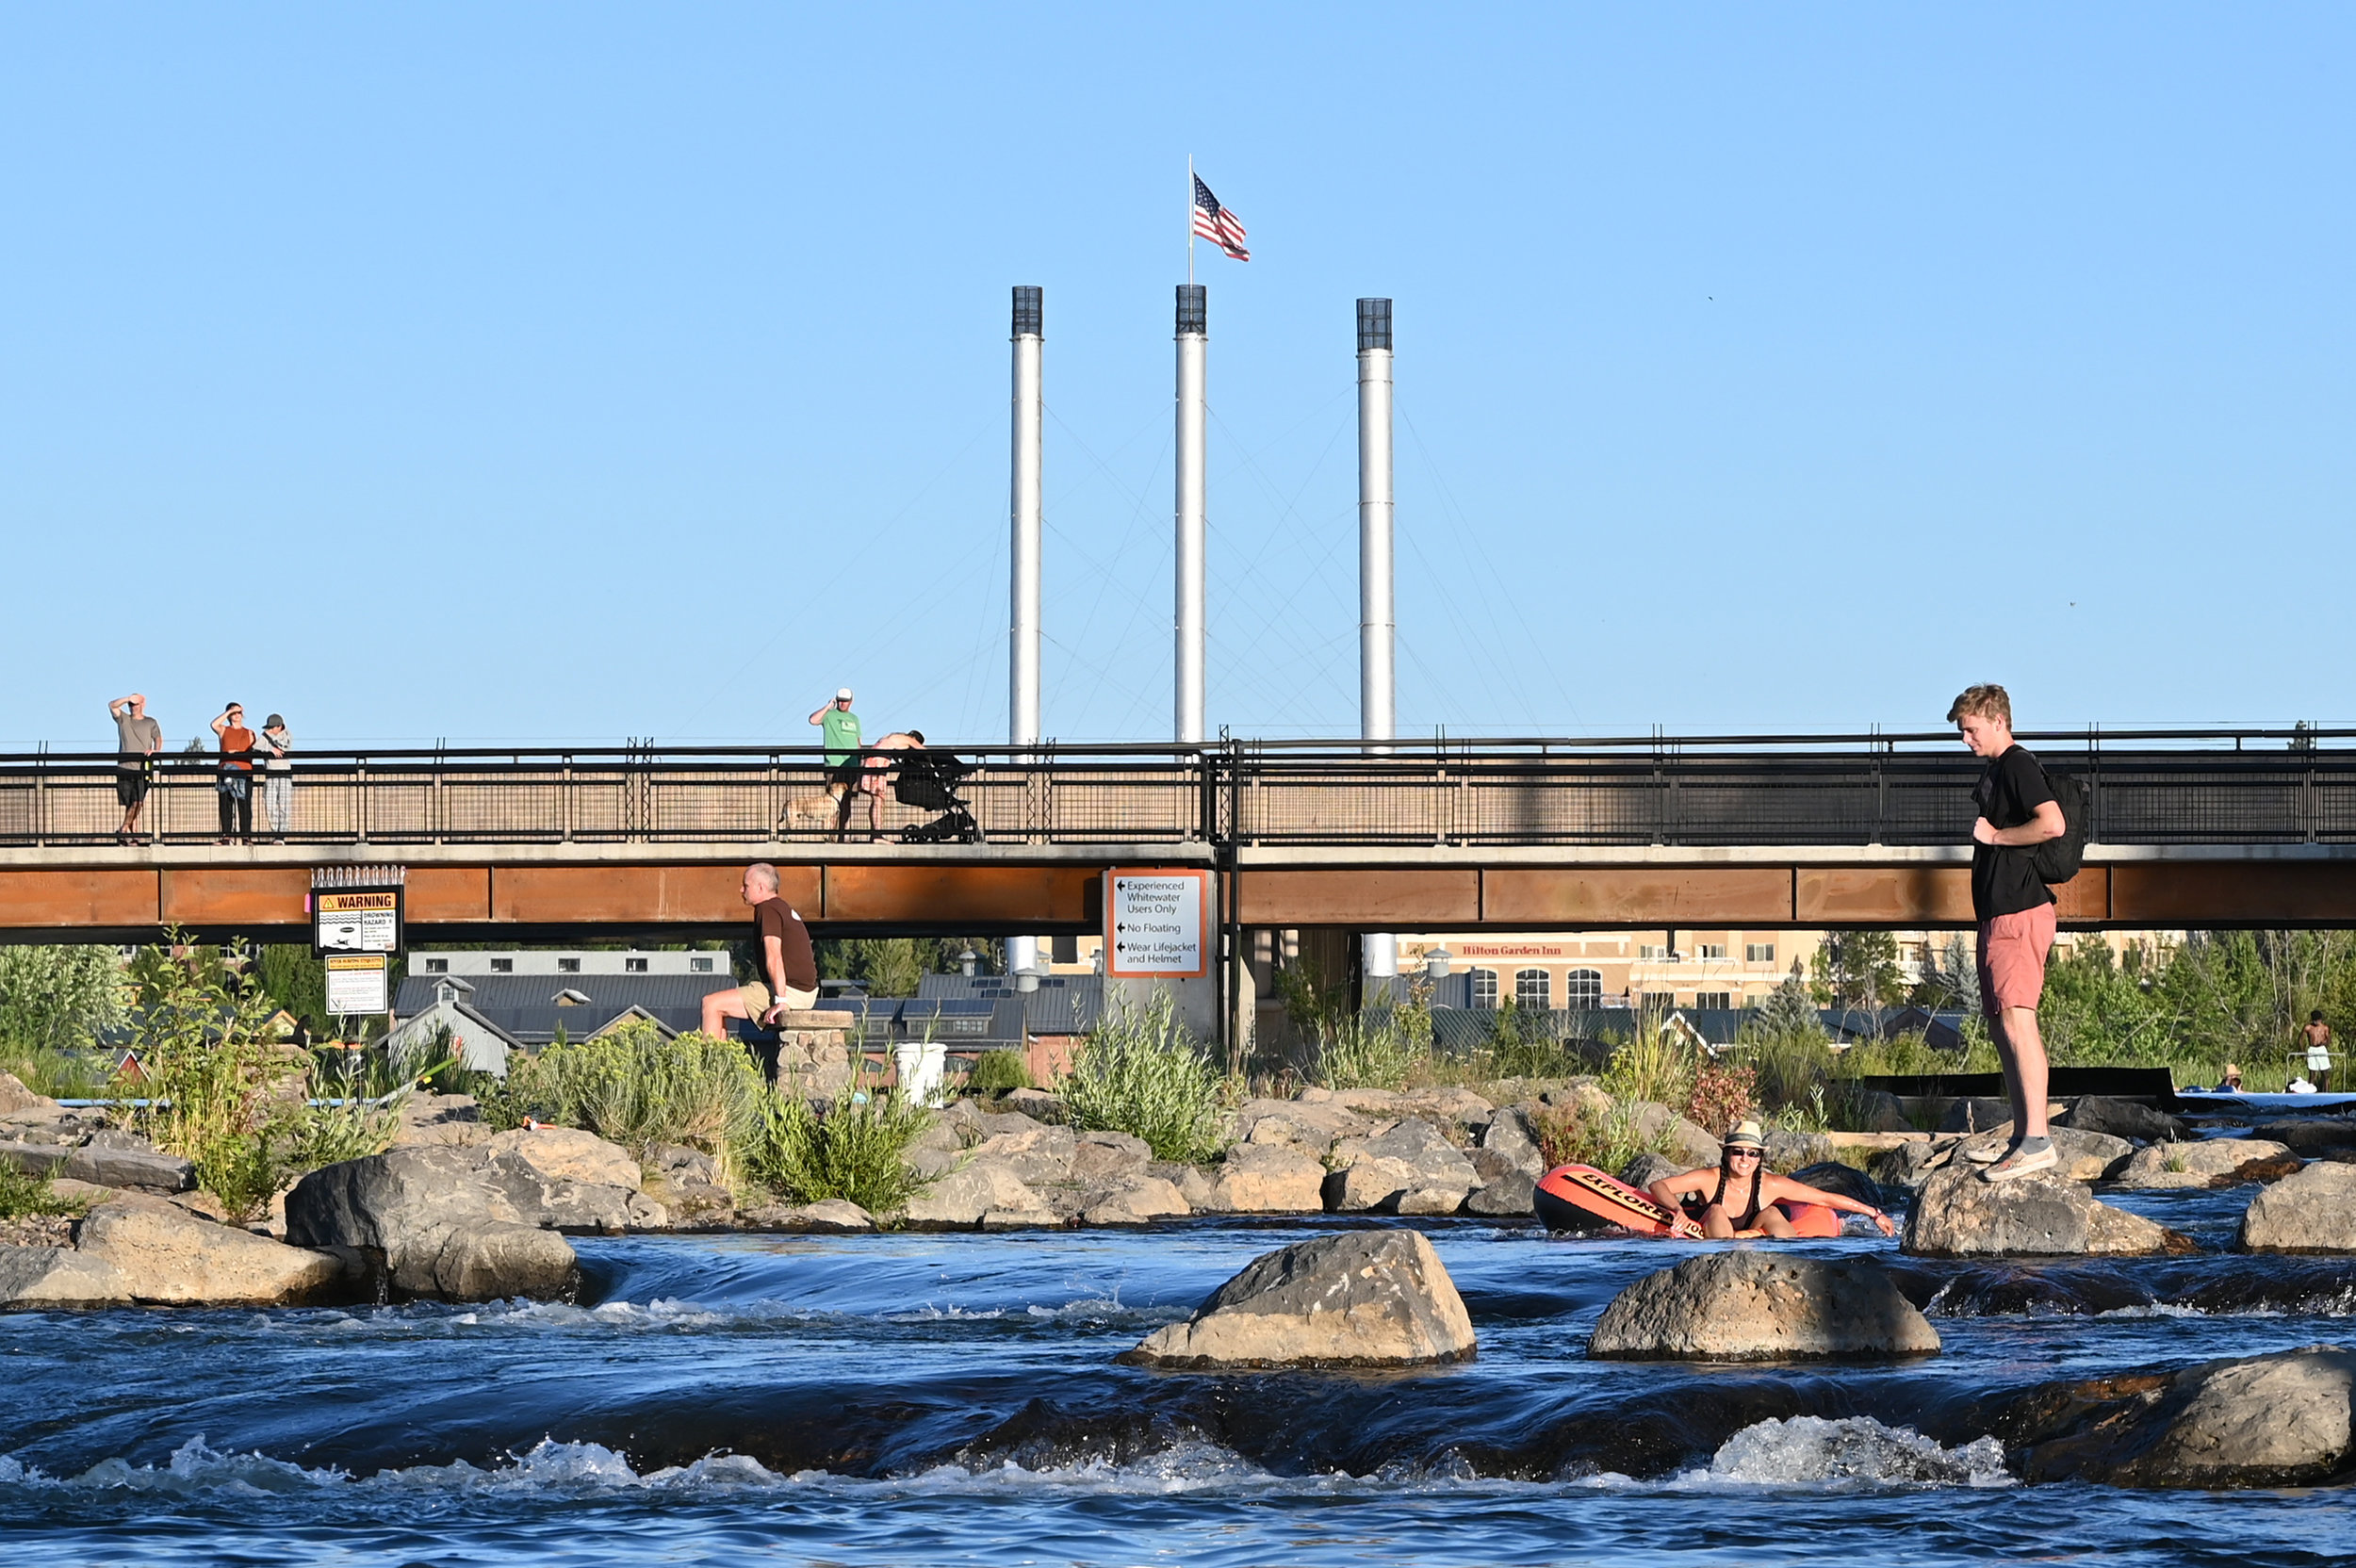 people line a pedestrian bridge above people in tubes and on rocks in the deschutes river, the old mill smokestacks in the background